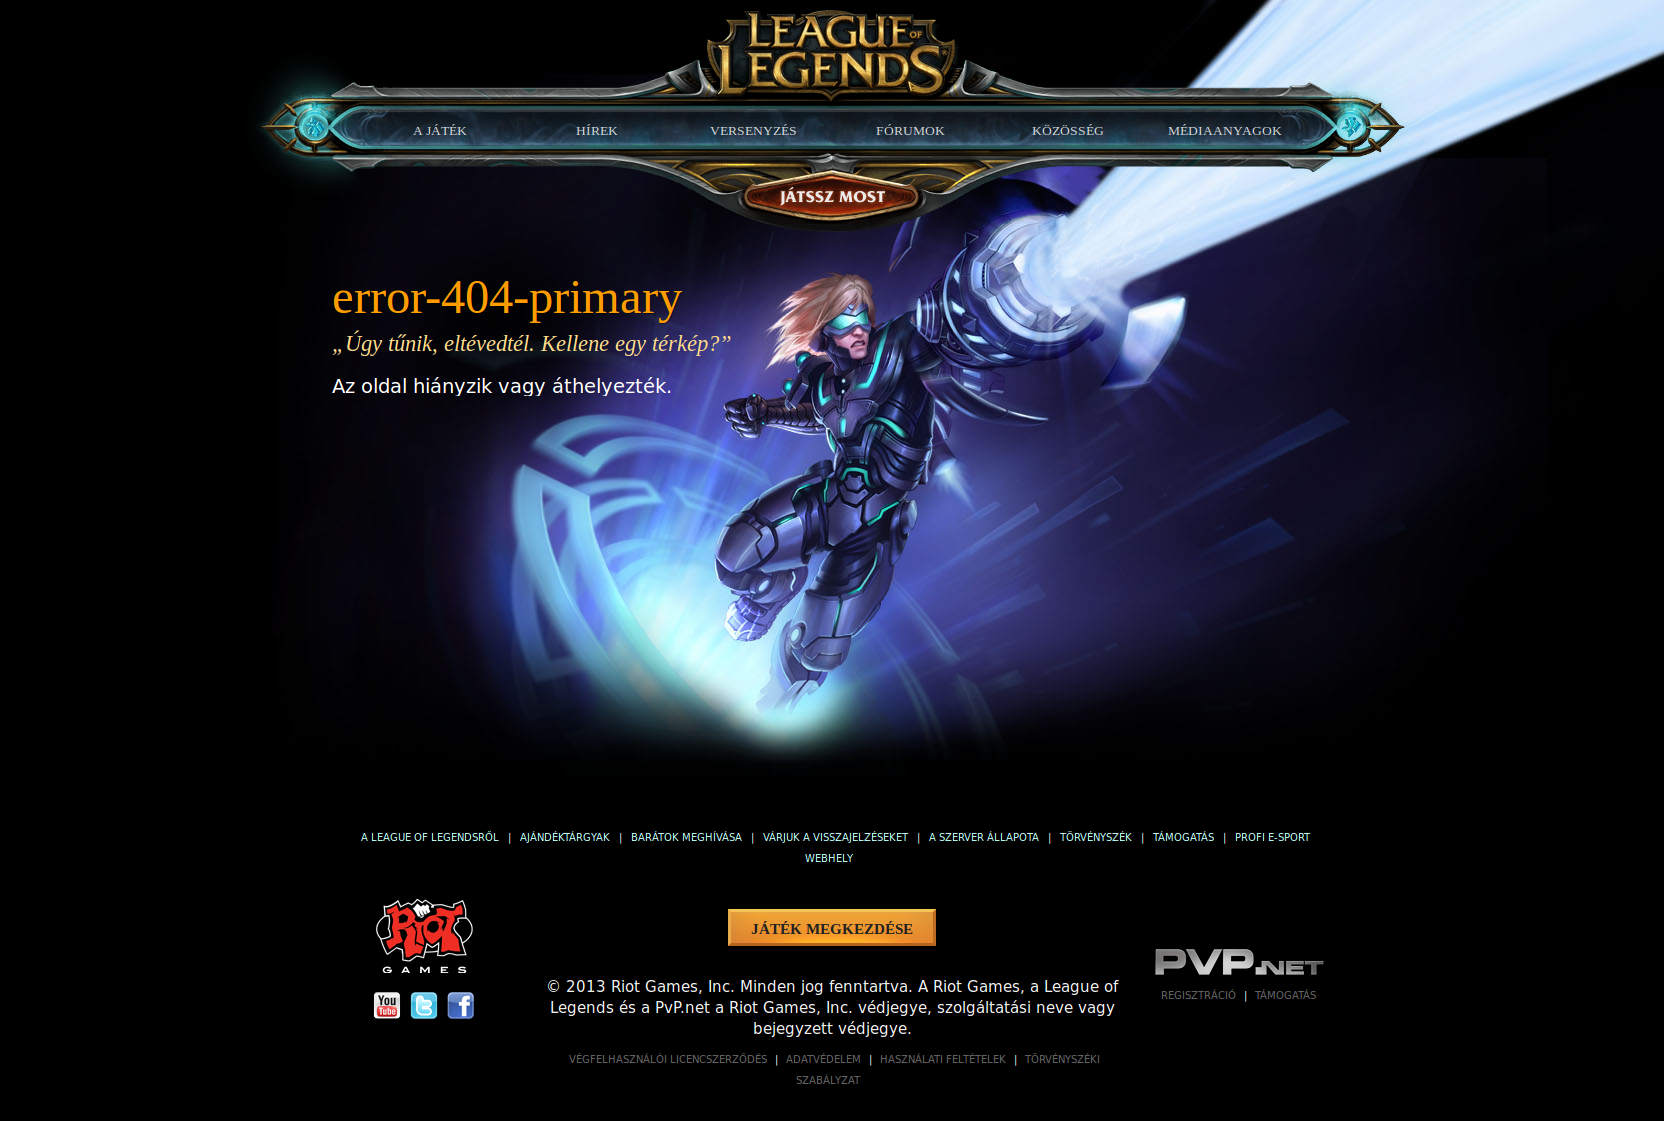 League of Legends magyar nyelven!